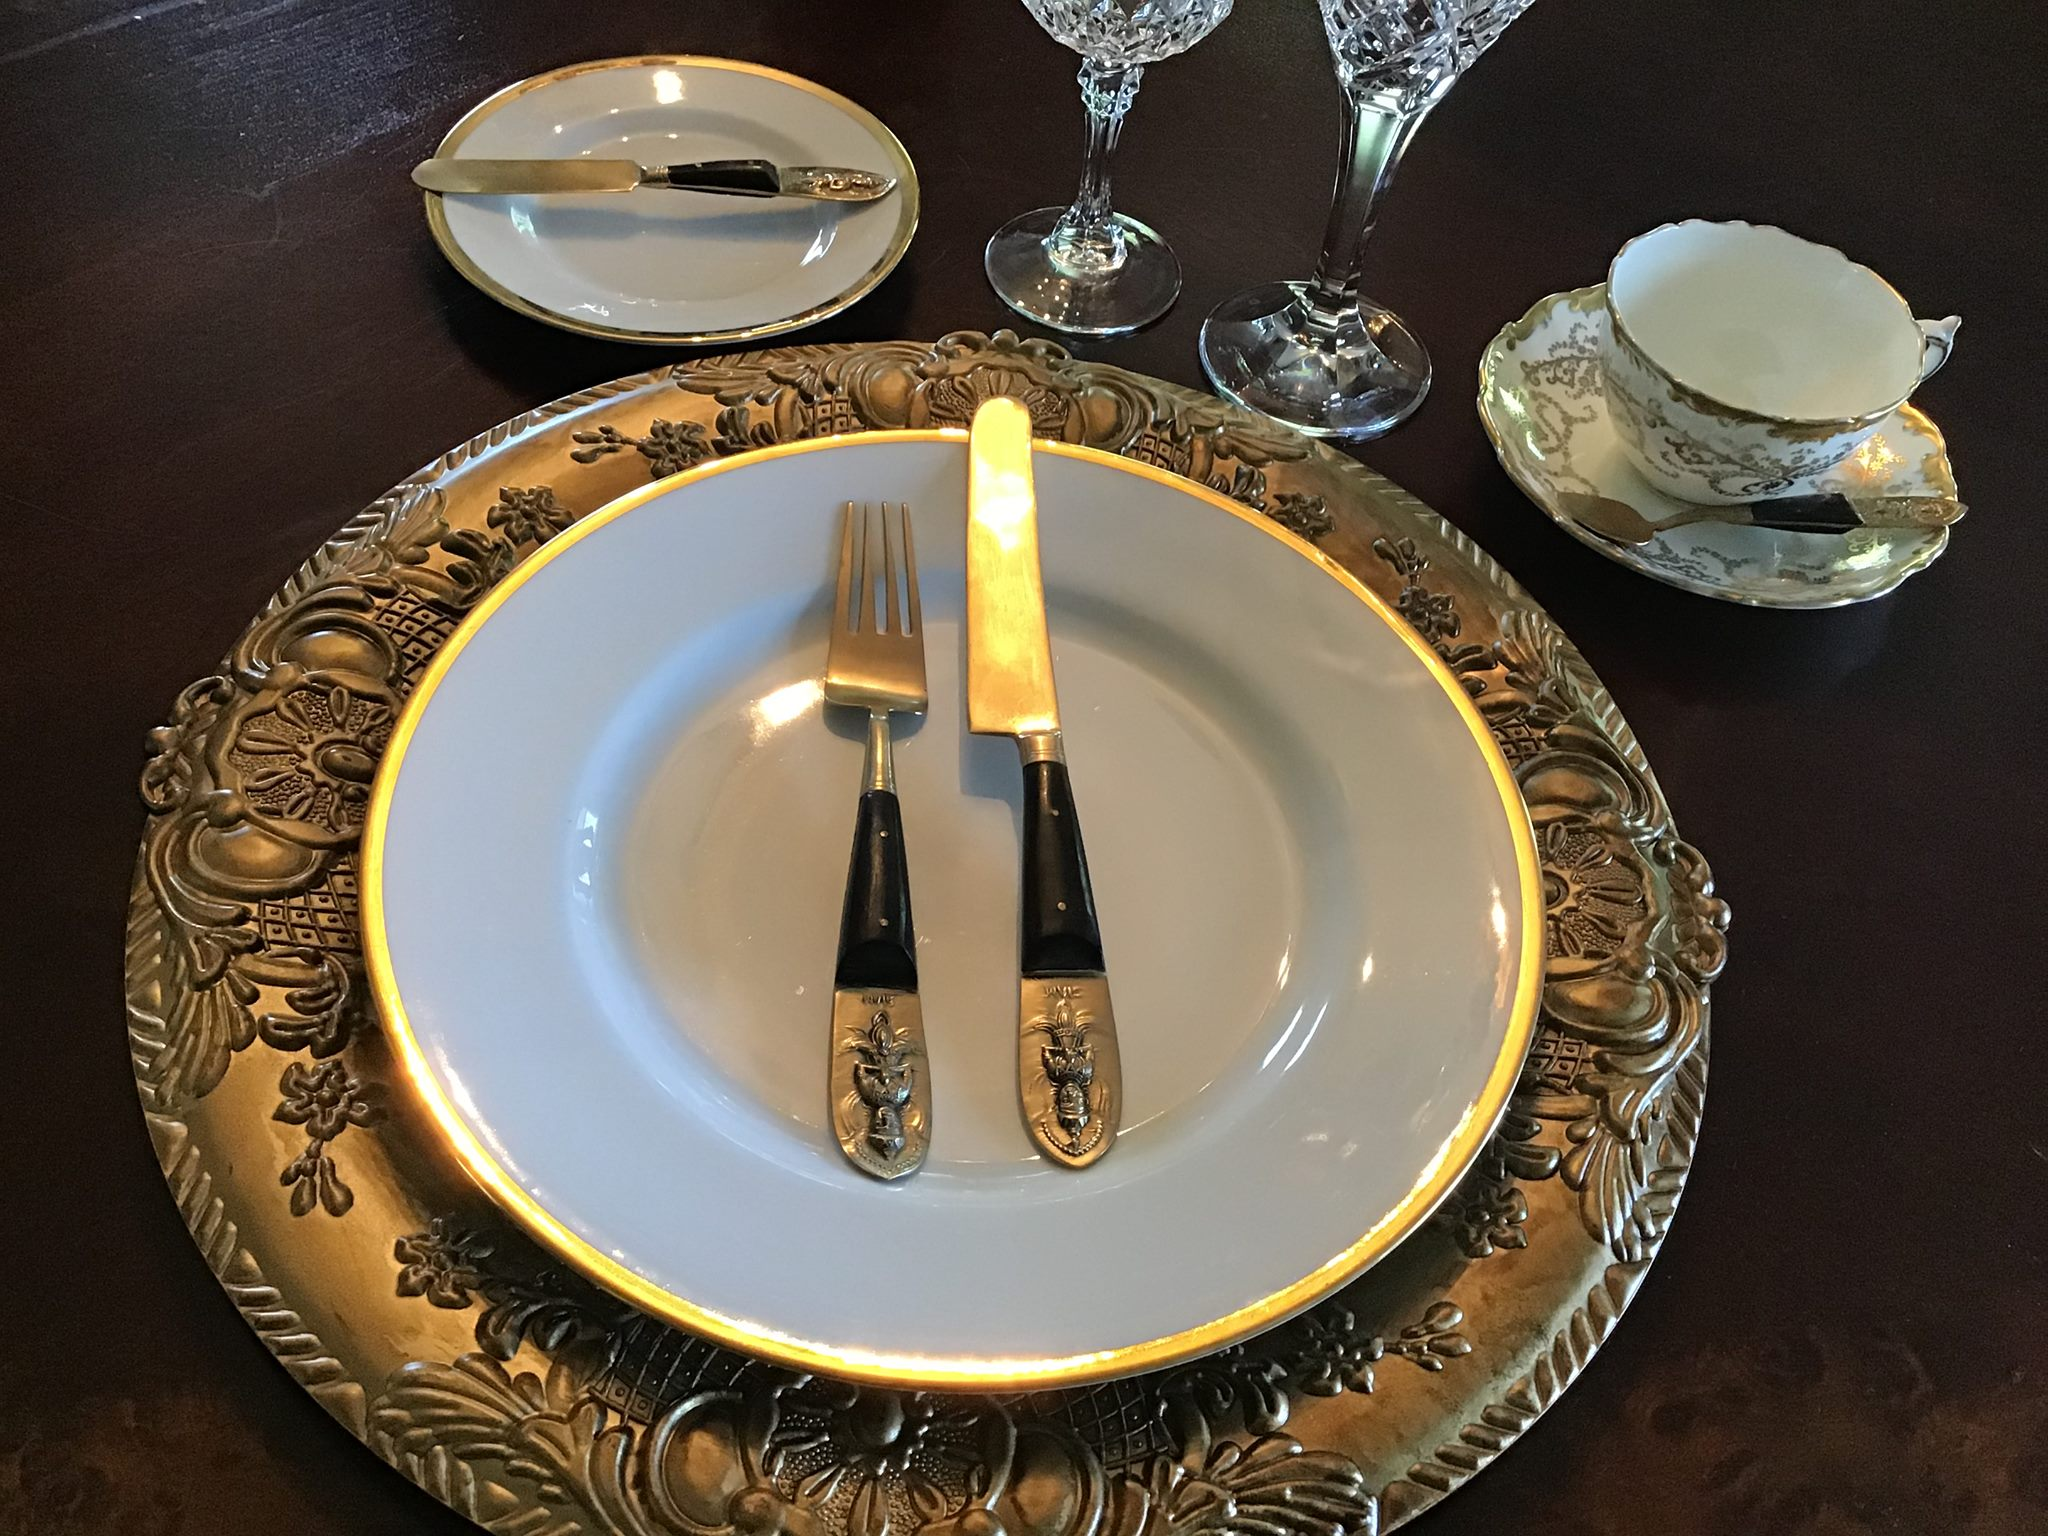 """Mariby Corpening's DID YOU KNOW: Table Etiquette No. 4 - By placement of utensils - """"I'M FINISHED EATING!"""""""